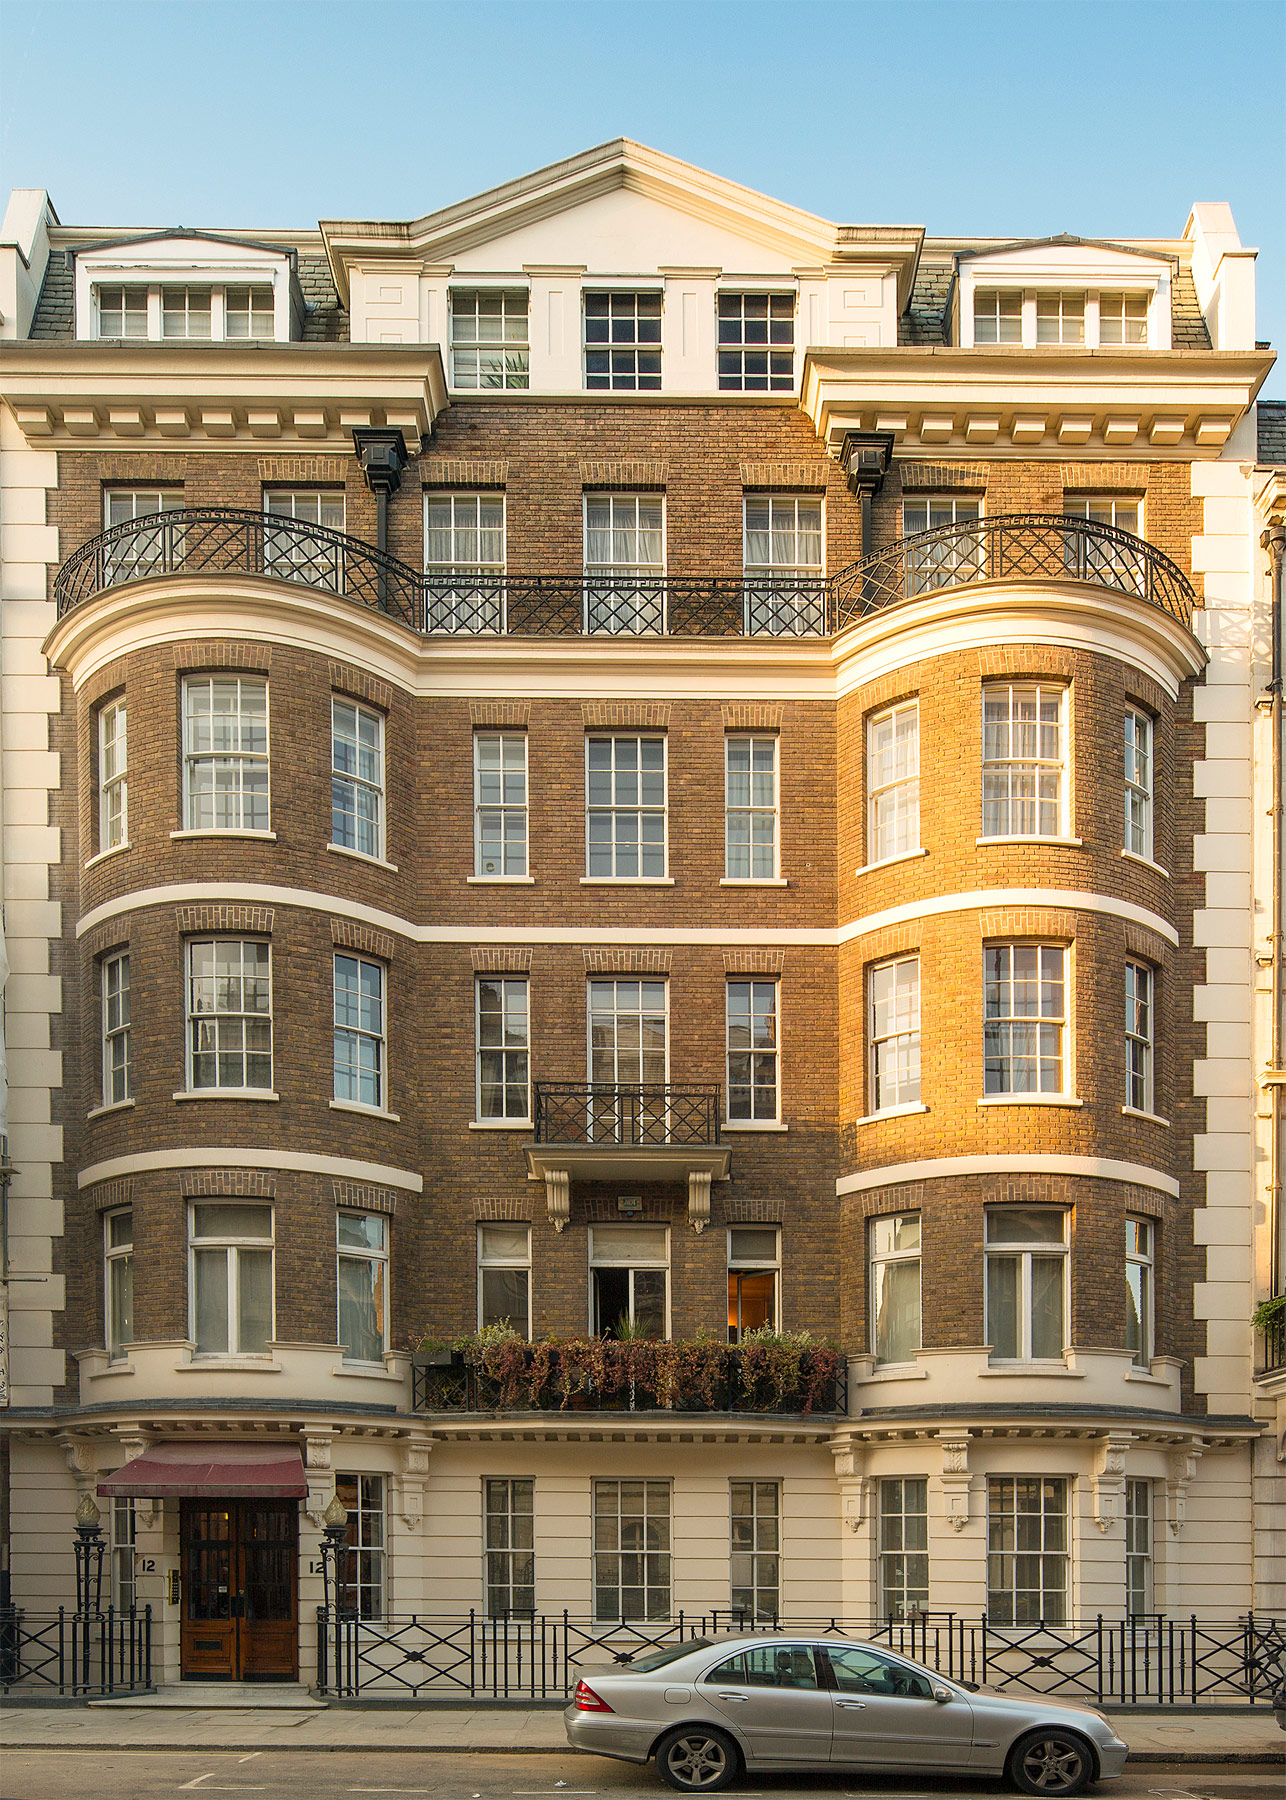 12 Charles Street in Mayfair